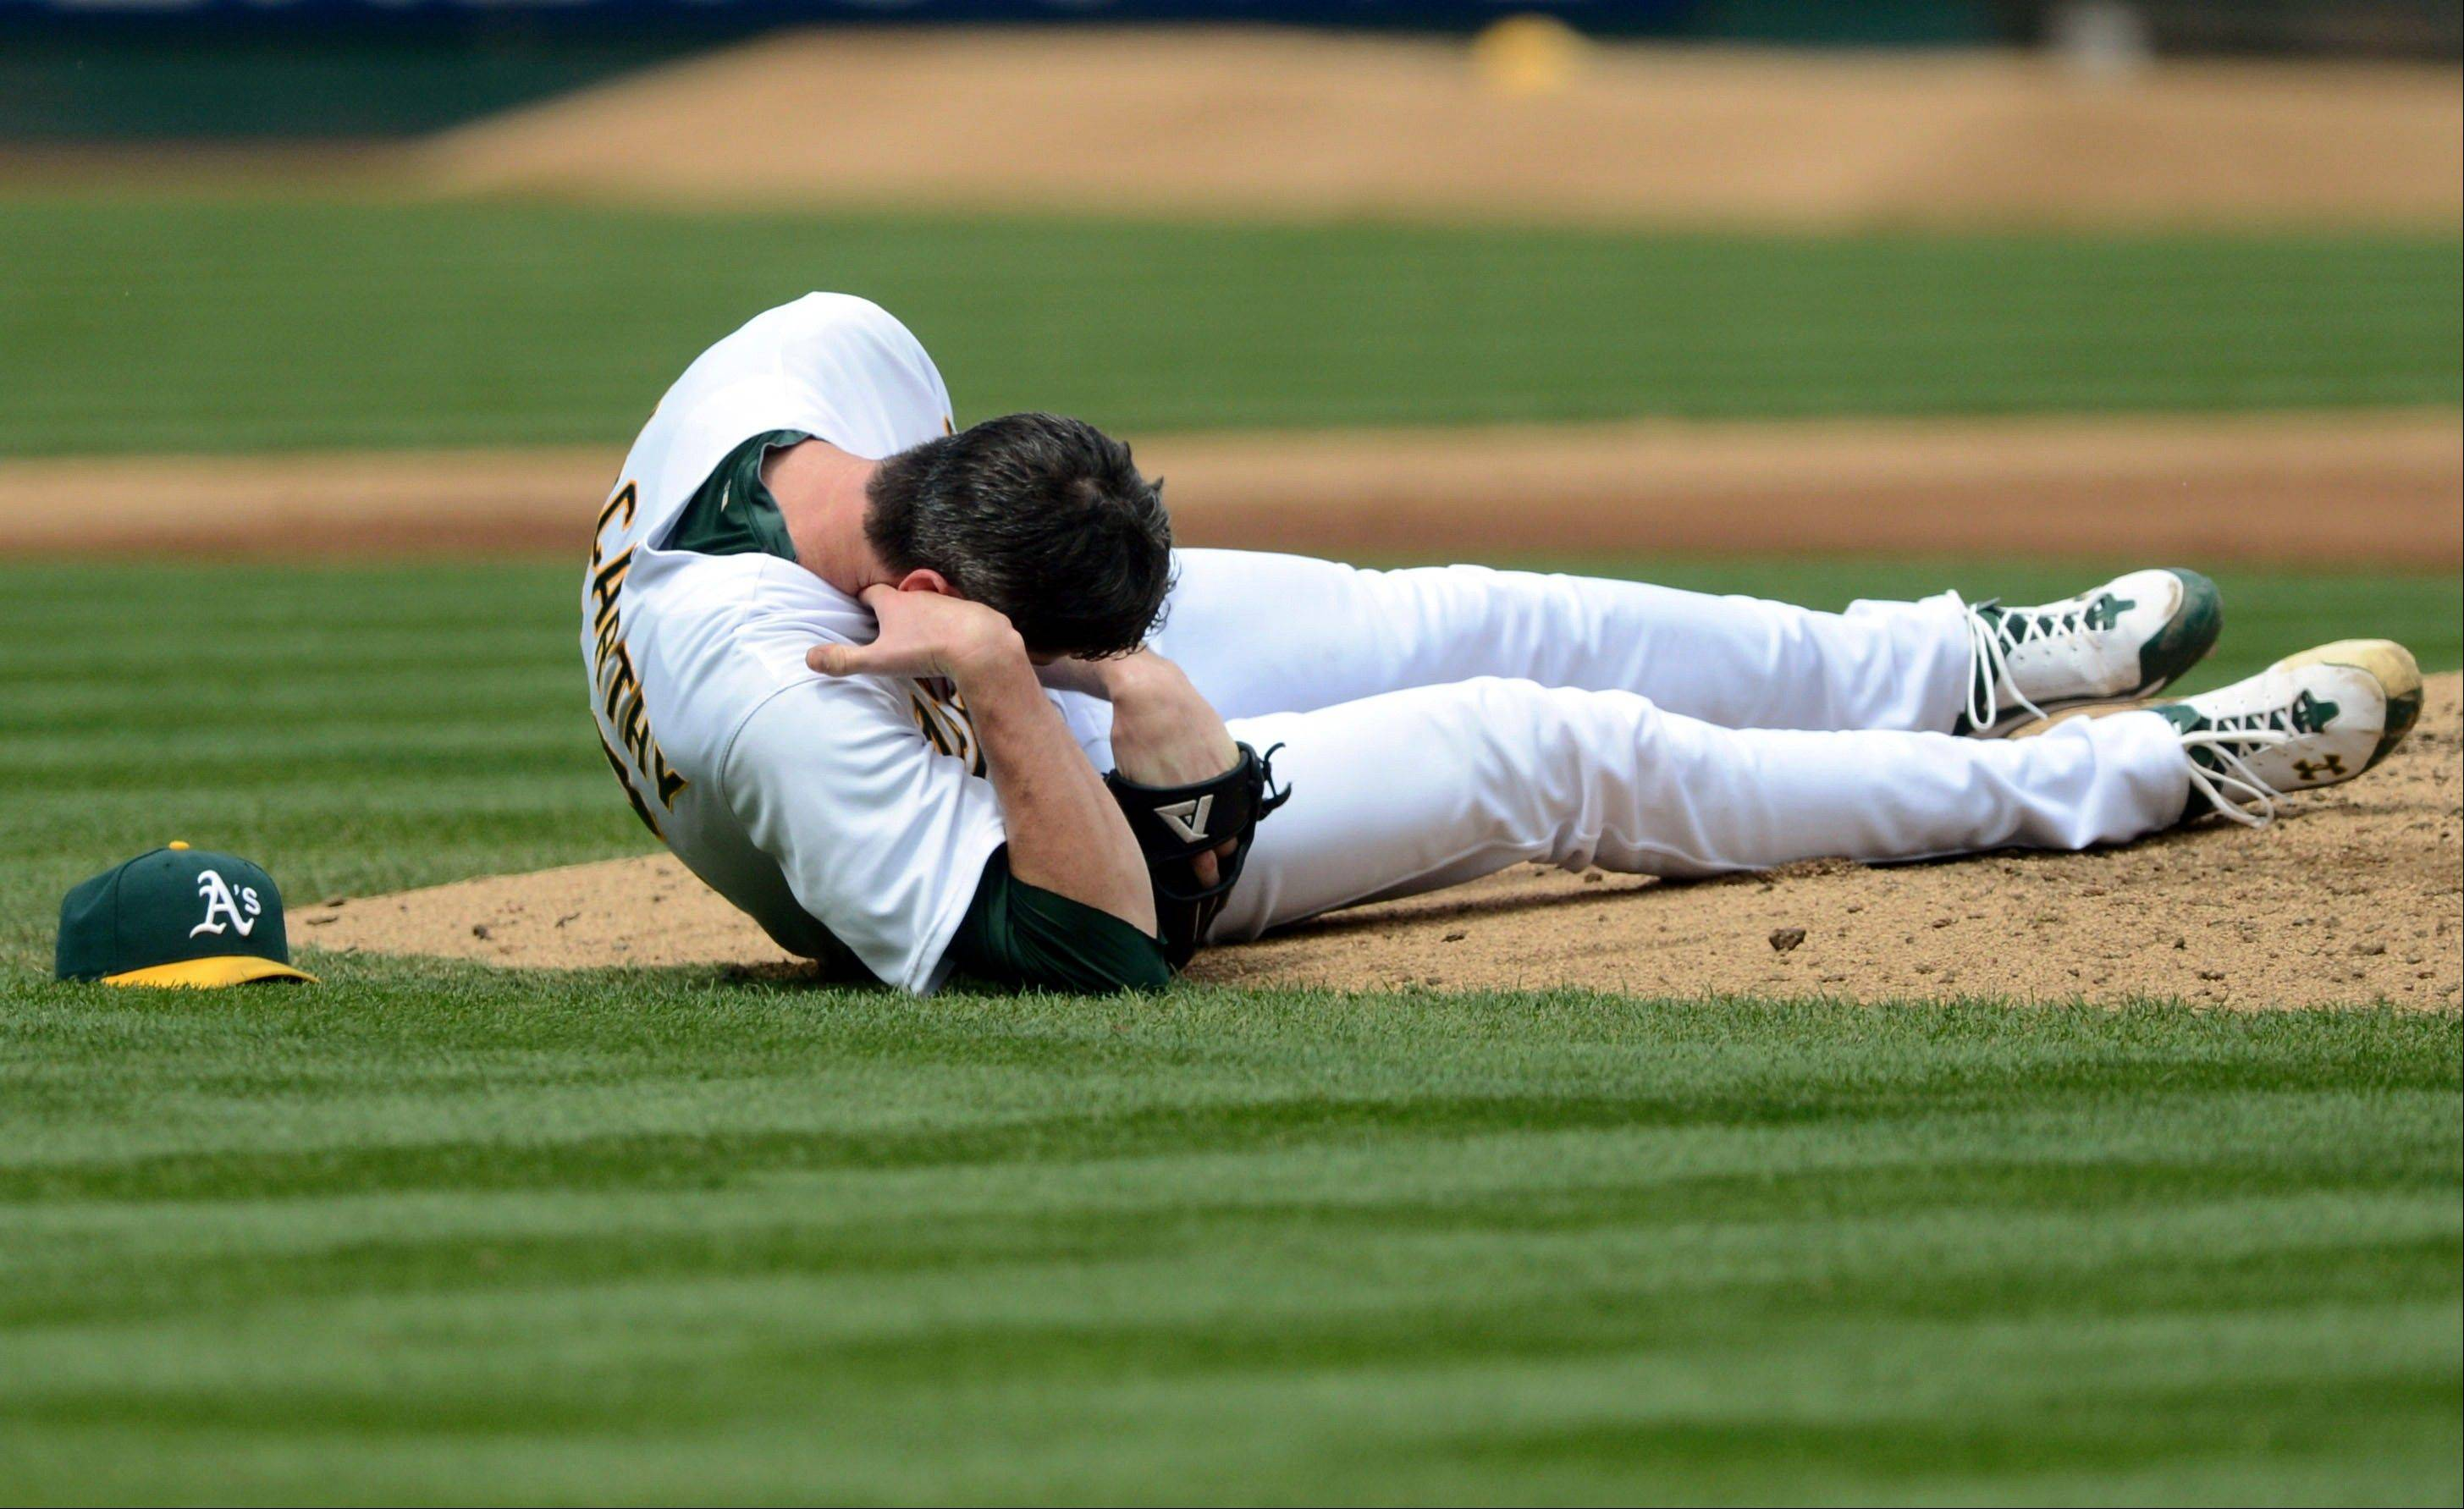 Oakland pitcher Brandon McCarthy holds his head after being struck by a ball hit by the Angels' Erick Aybar in the fourth inning Wednesday at home. He underwent surgery on Thursday.